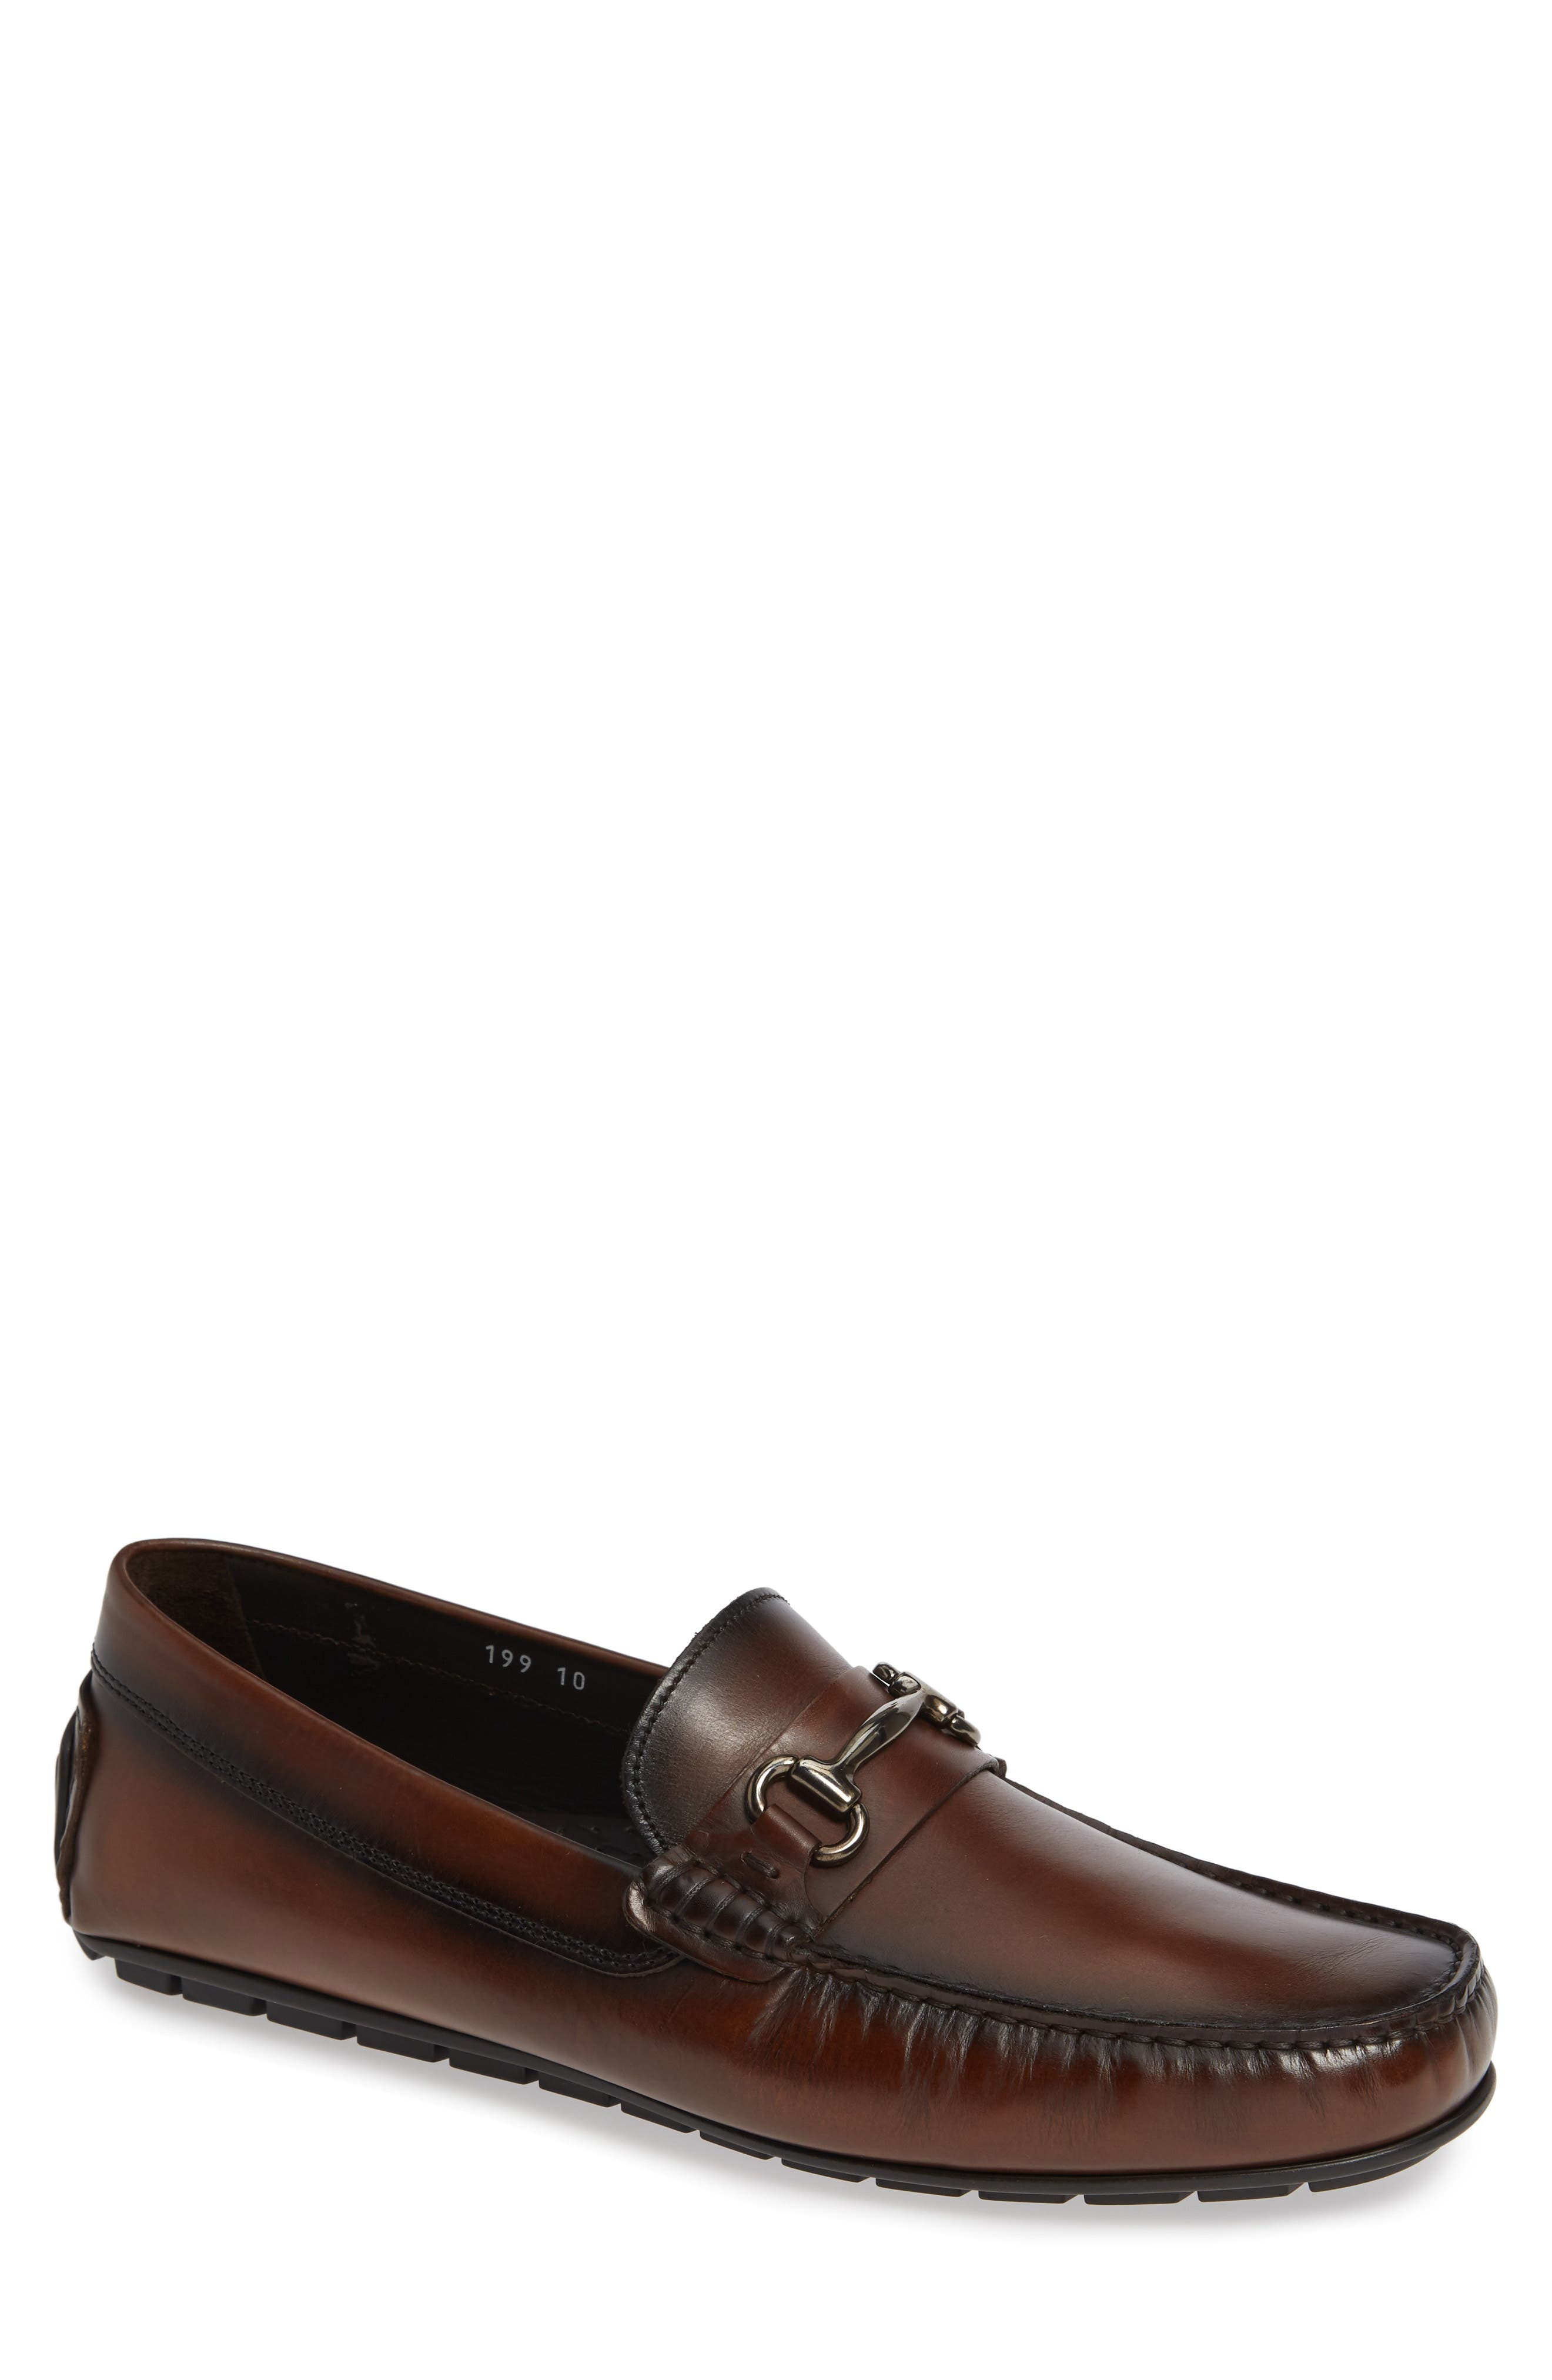 Del Amo Driving Shoe,                             Main thumbnail 1, color,                             BROWN LEATHER